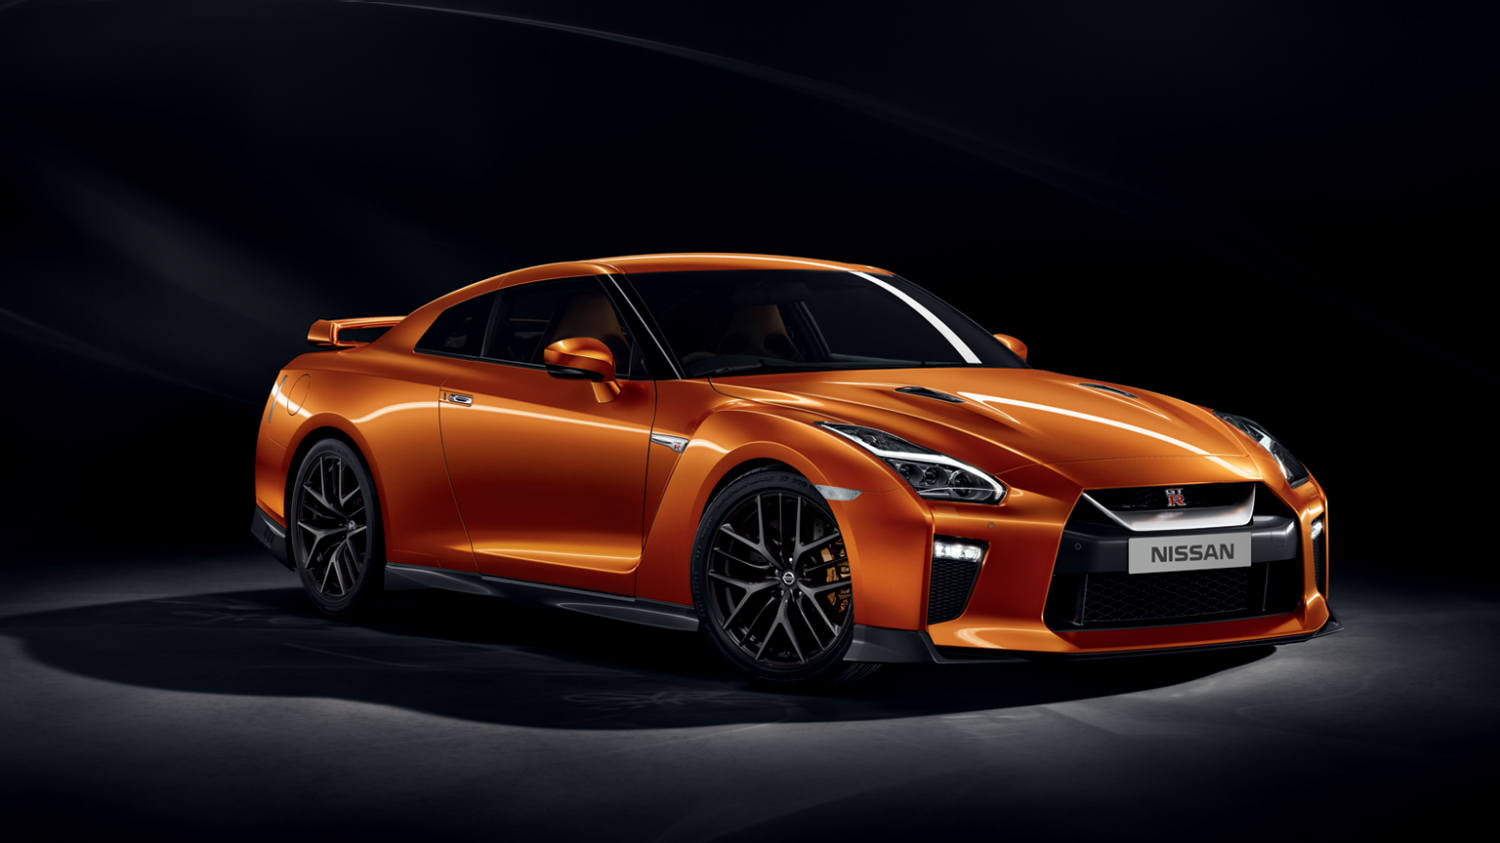 NISSAN TO RELEASE ALL NEW 2017 NISSAN GT R